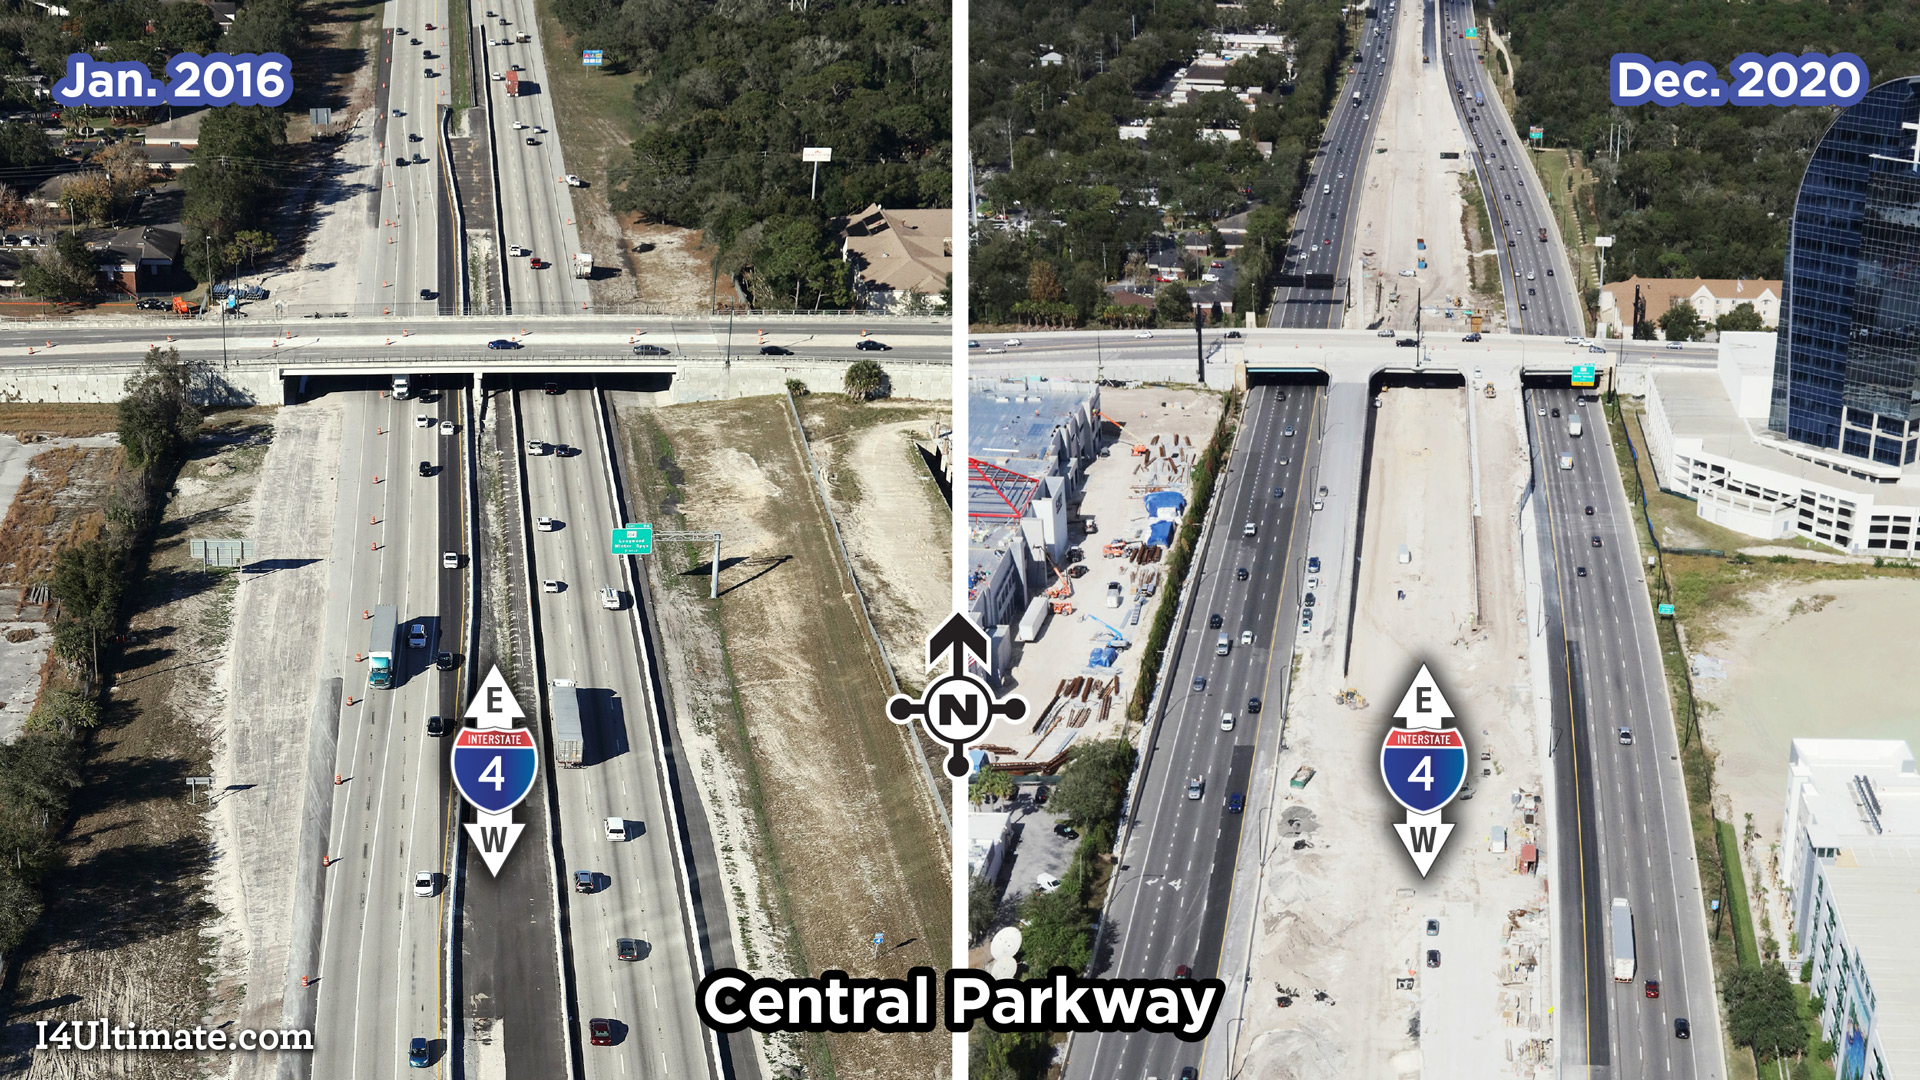 4738-I4Ultimate-GUL-campaign-images-20210212-22-Central-Parkway